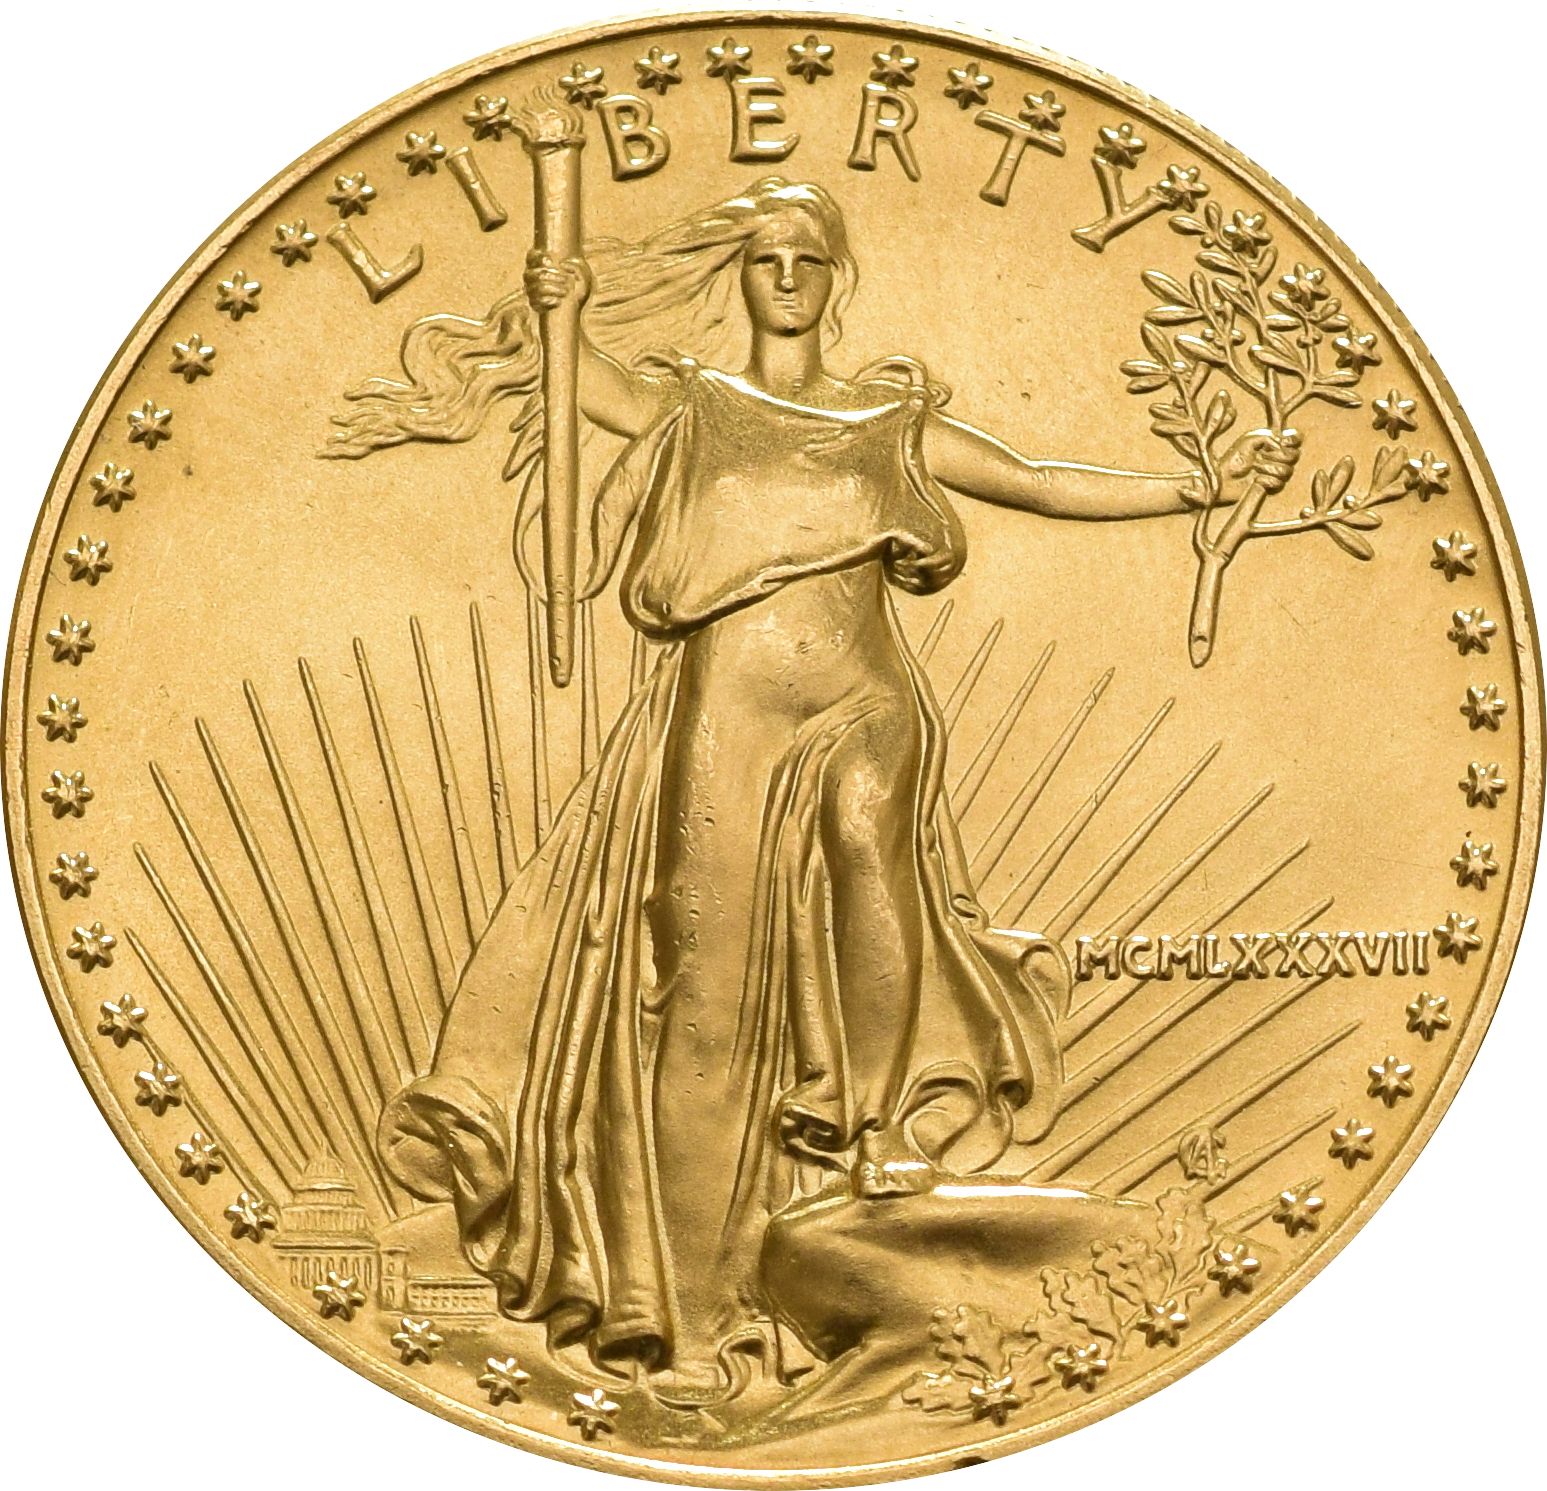 1987 1oz American Eagle Gold Coin 163 1 150